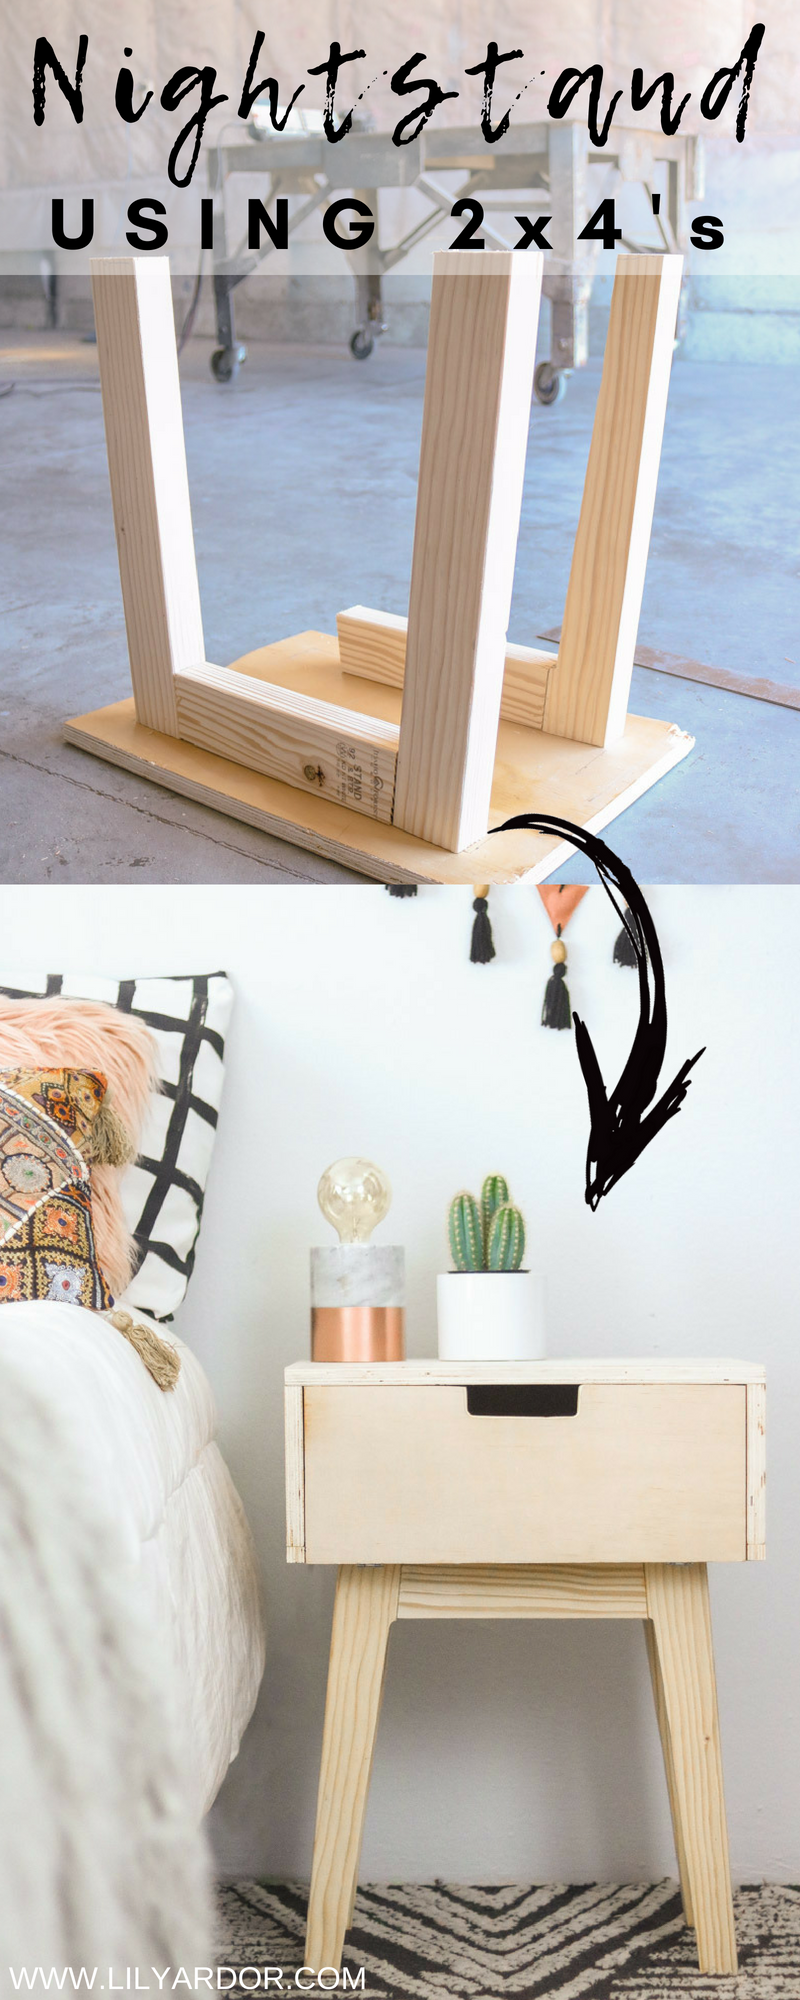 Here S A Quick Nightstand You Can Make Using 2x4 S And Plywood Follow 7 Easy Steps Diy Furniture Easy Diy Furniture Projects Diy Nightstand